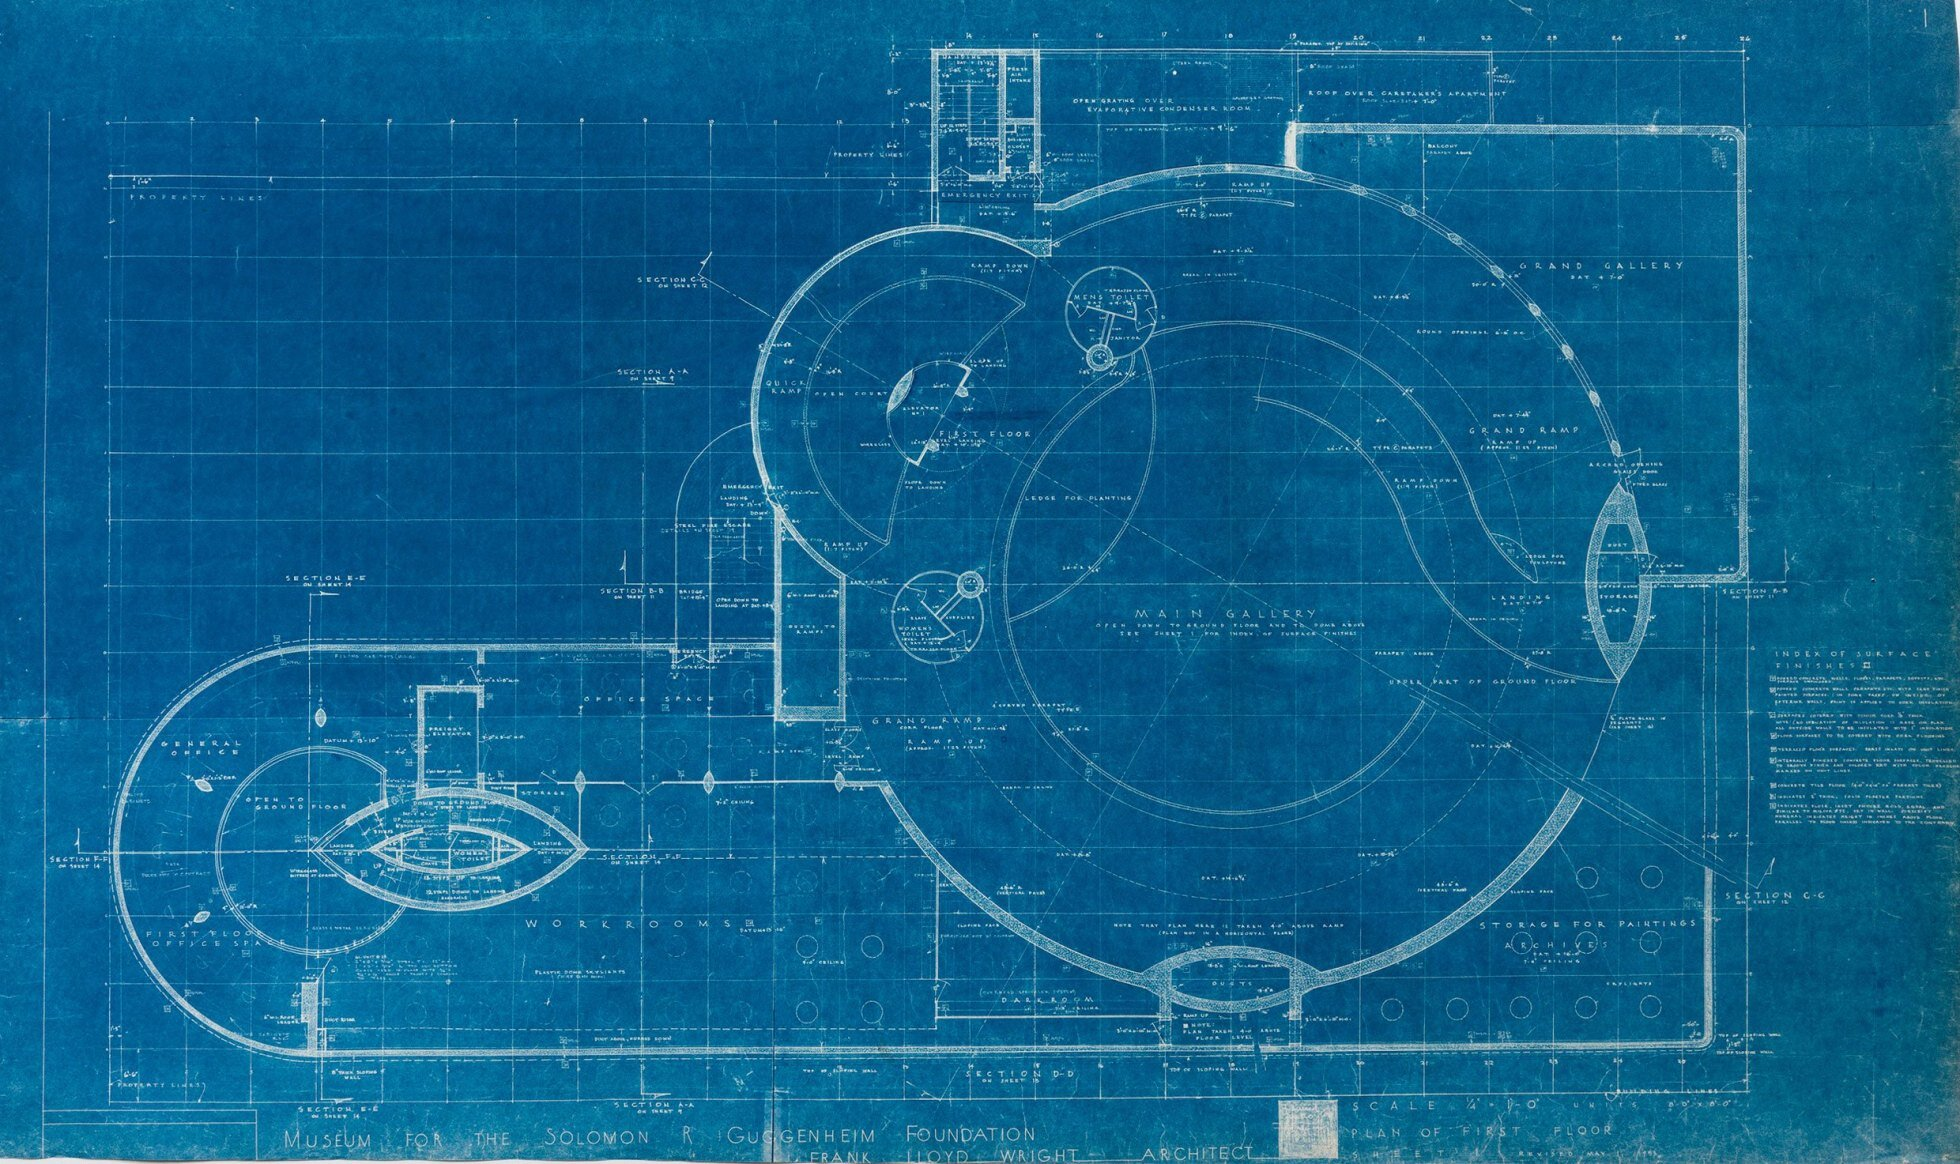 检查清单flw150-blueprint-full-plan-712.01_ph.jpg